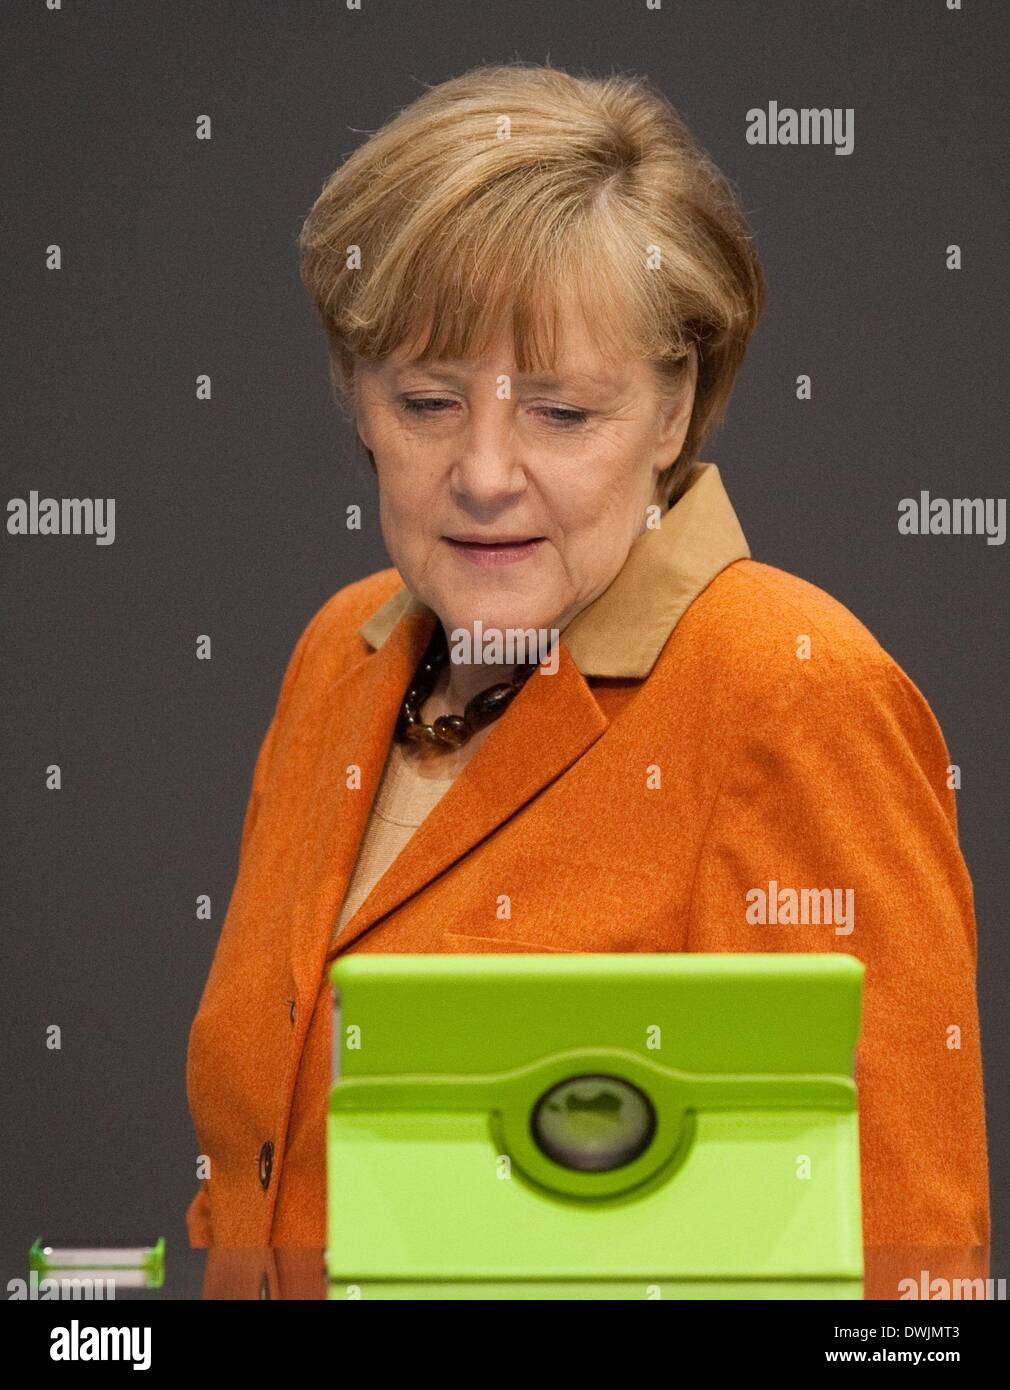 Hanover, Germany. 10th Mar, 2014. German Chancellor Angela Merkel (CDU) looks at an iPad and an iPhone at the booth of the Unify company during her opening tour across the CeBIT fair in Hanover, Germany, 10 March 2014. Great Britian is this year's partner country. The fair runs until 14 March 2014. Photo: Swen Pfoertner/dpa/Alamy Live News - Stock Image